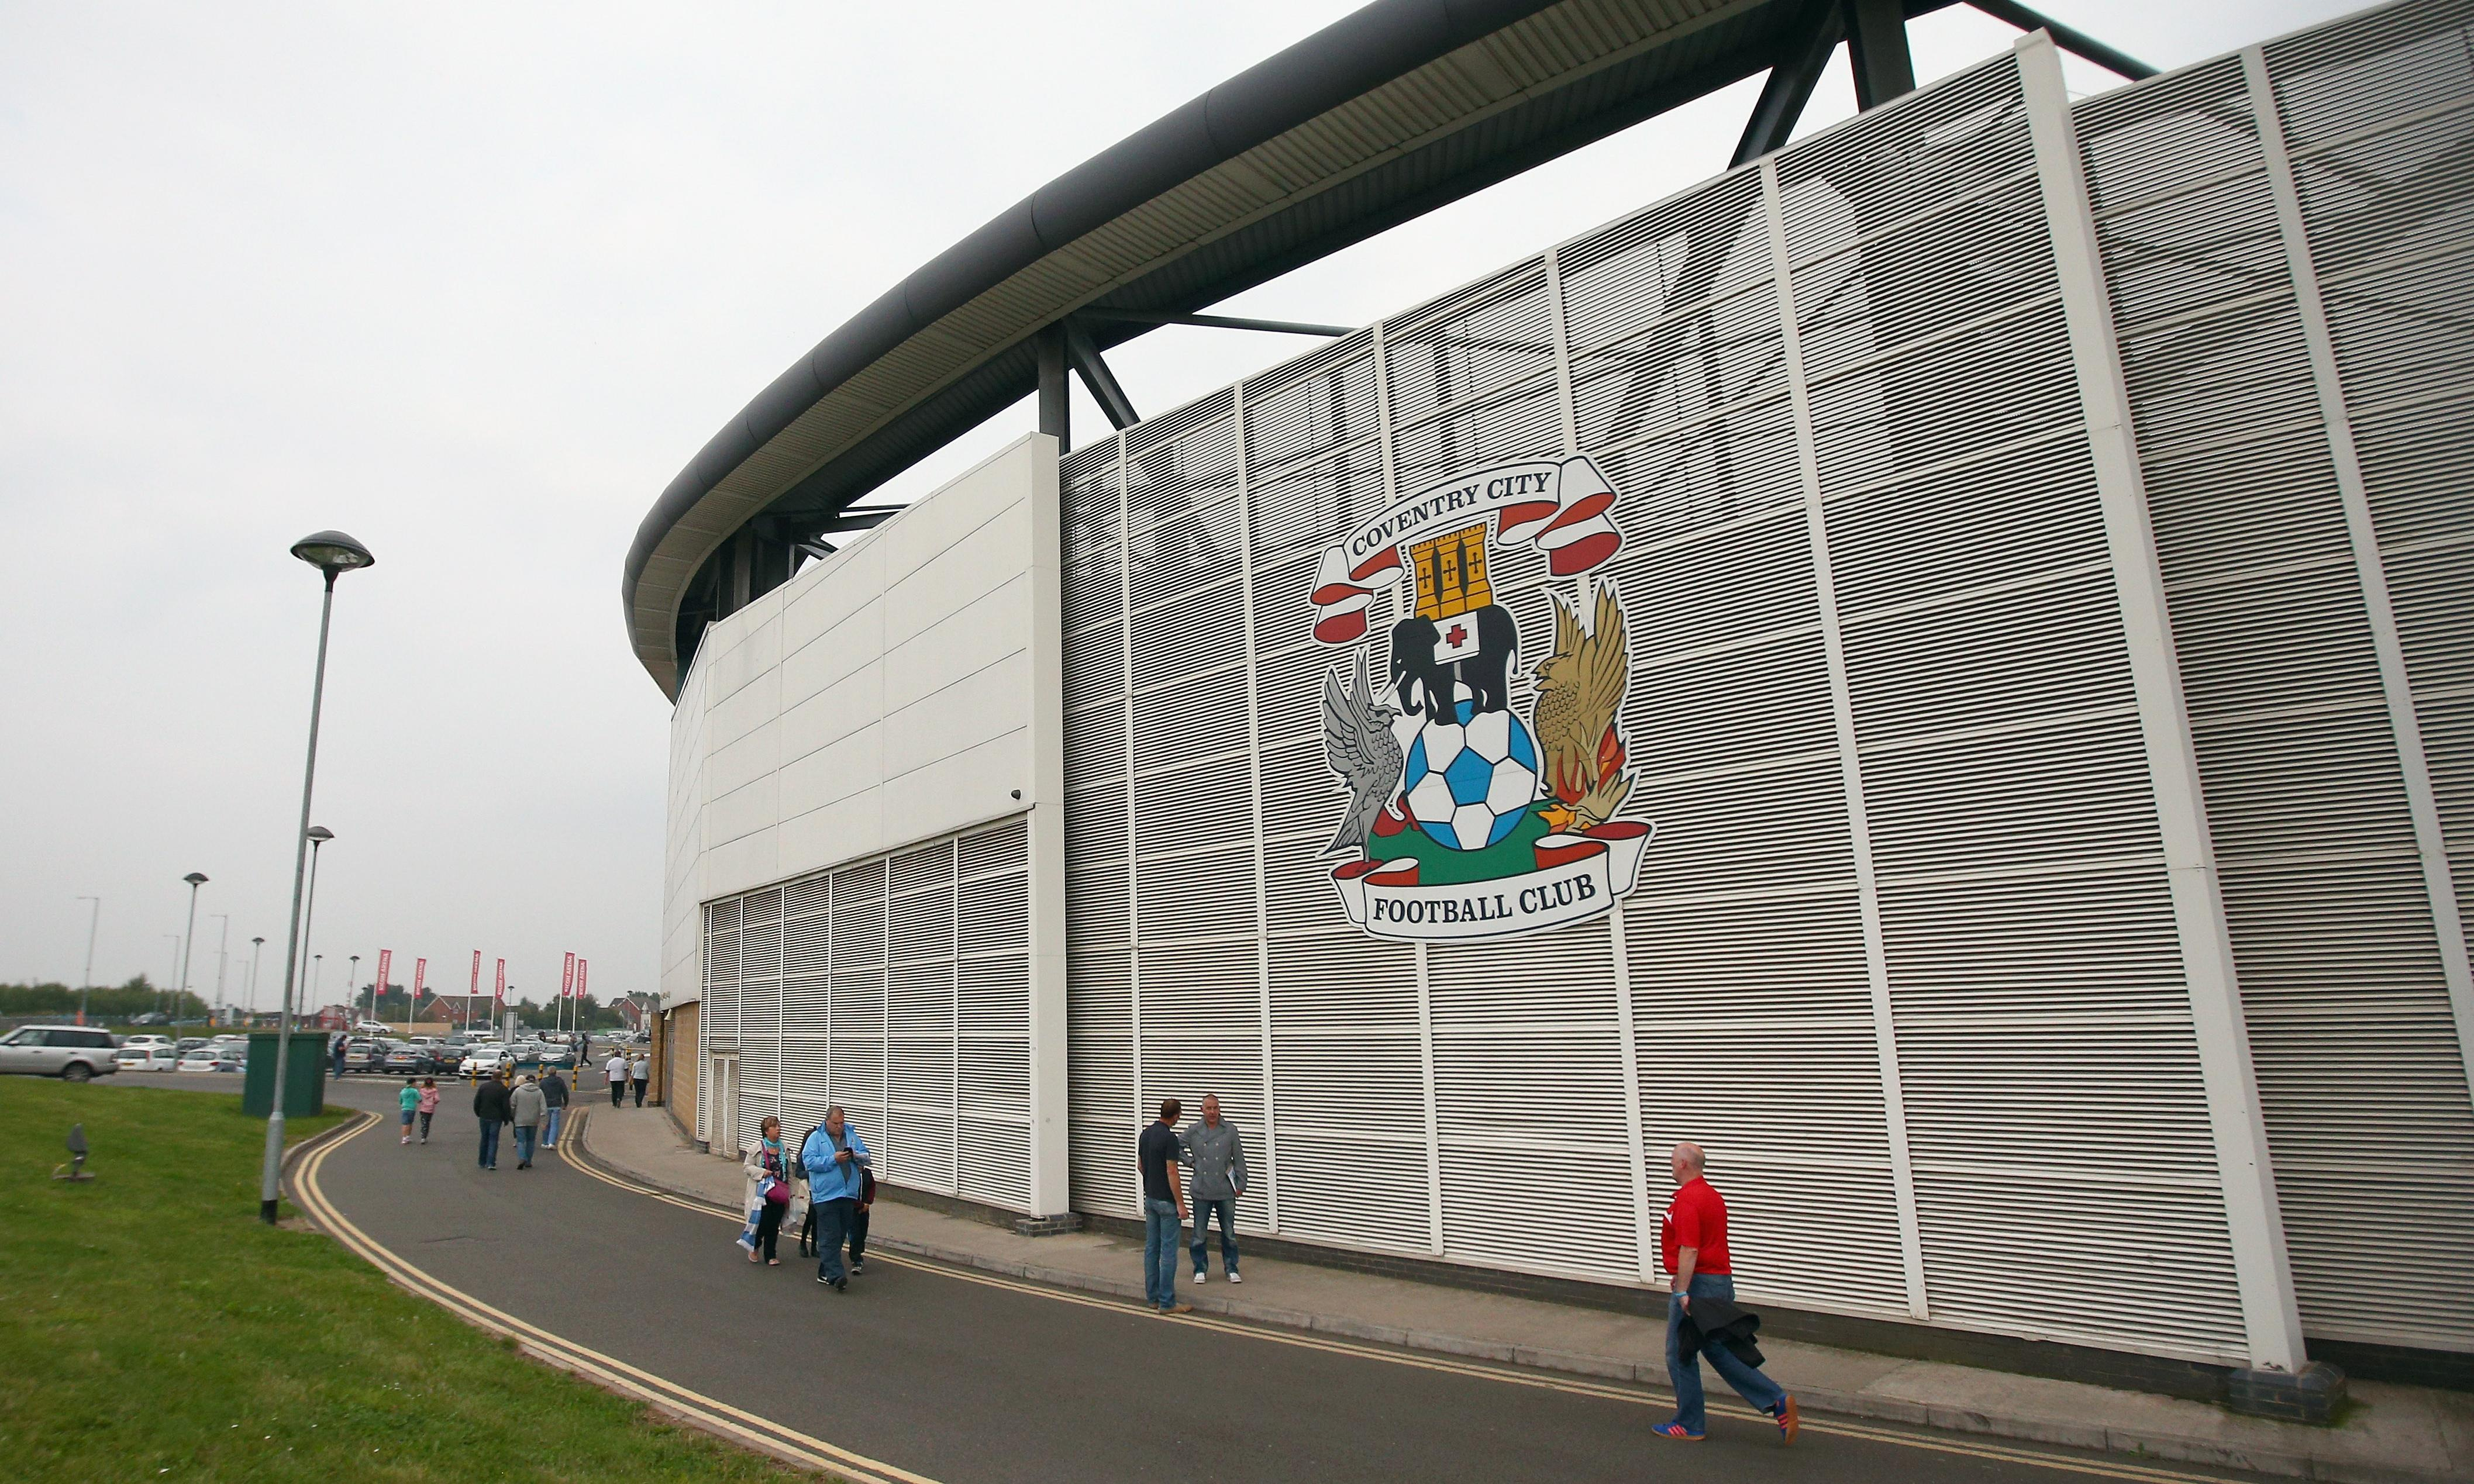 Coventry City announce groundshare agreement is in place for next season